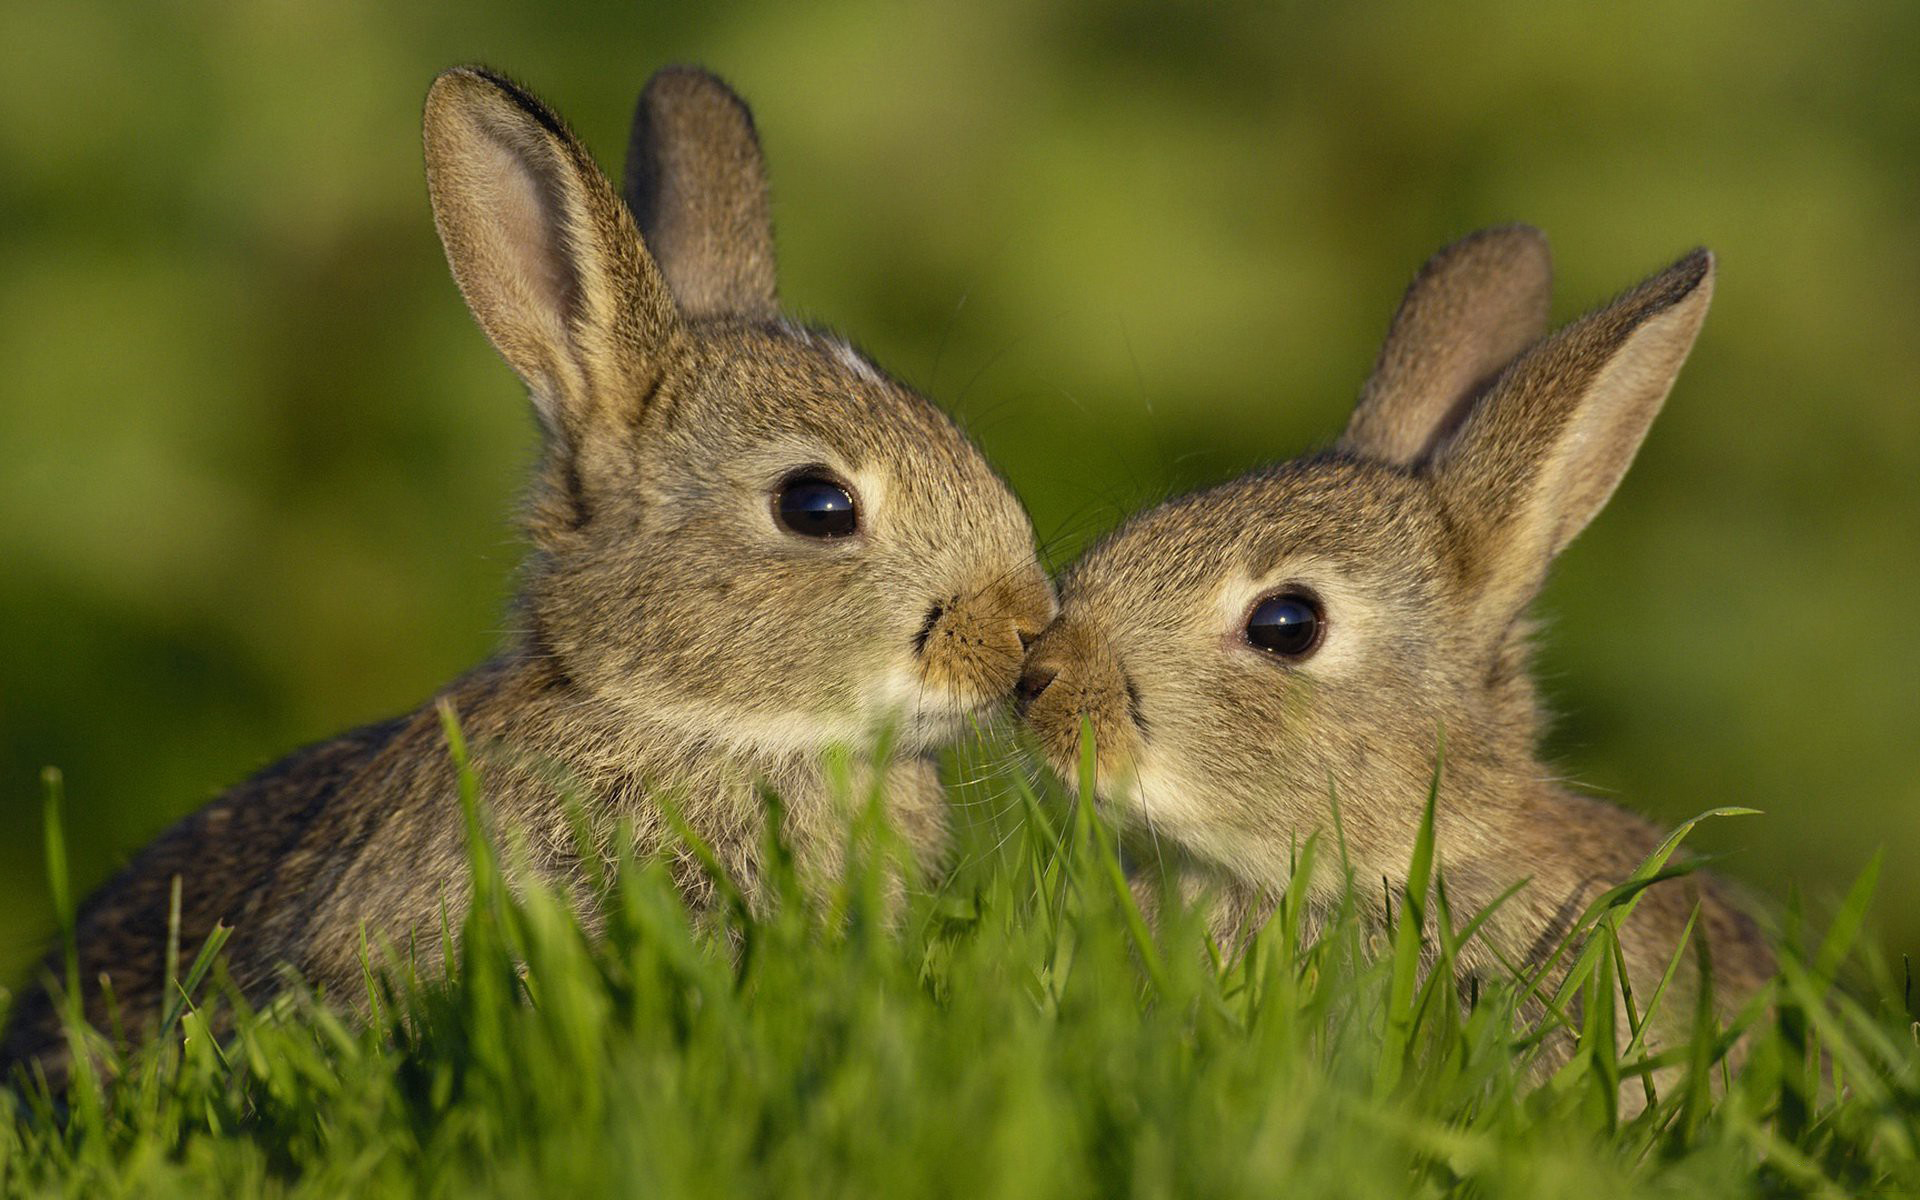 25037 download wallpaper Animals, Rabbits screensavers and pictures for free